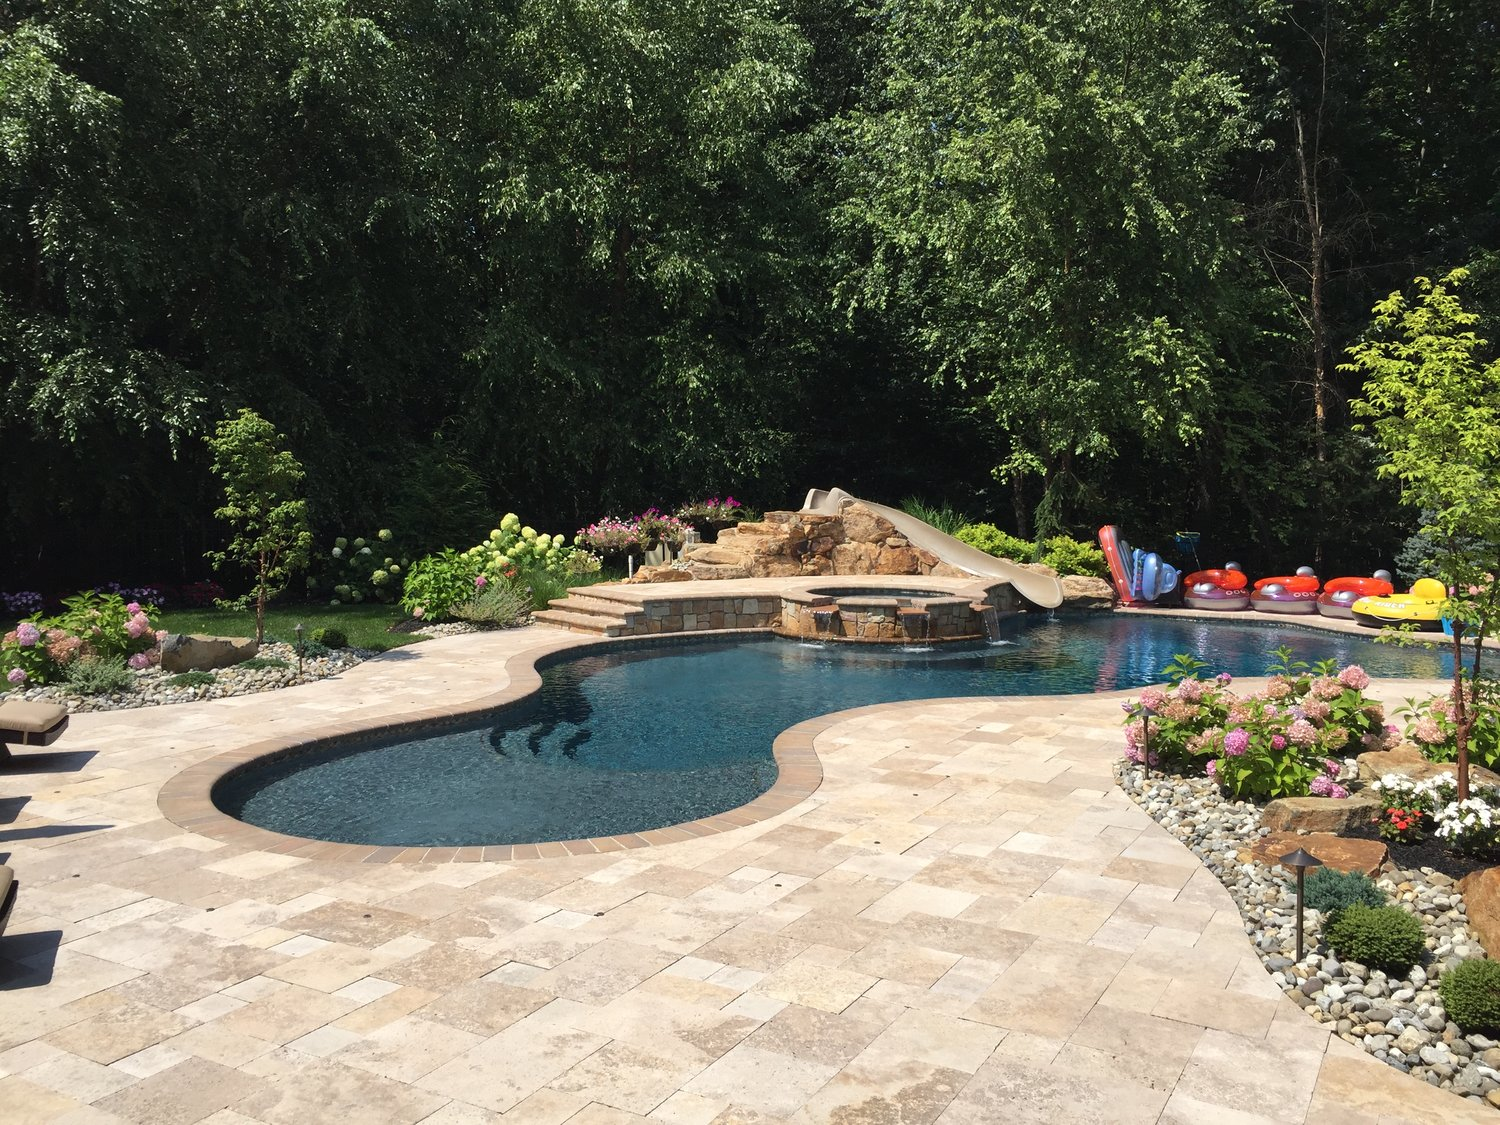 Tuscany in Montville - 825 sf free form pool - 125 sf sun shelf - tumbled brick coping - travertine patio - raised spa with triple spillways -stone veneer 0 17' waterslide with custom stone steps - gas fire pit - outdoor kitchen and bar - mediterranean blue hydrazzo plaster finish - glass tile - LED lighting